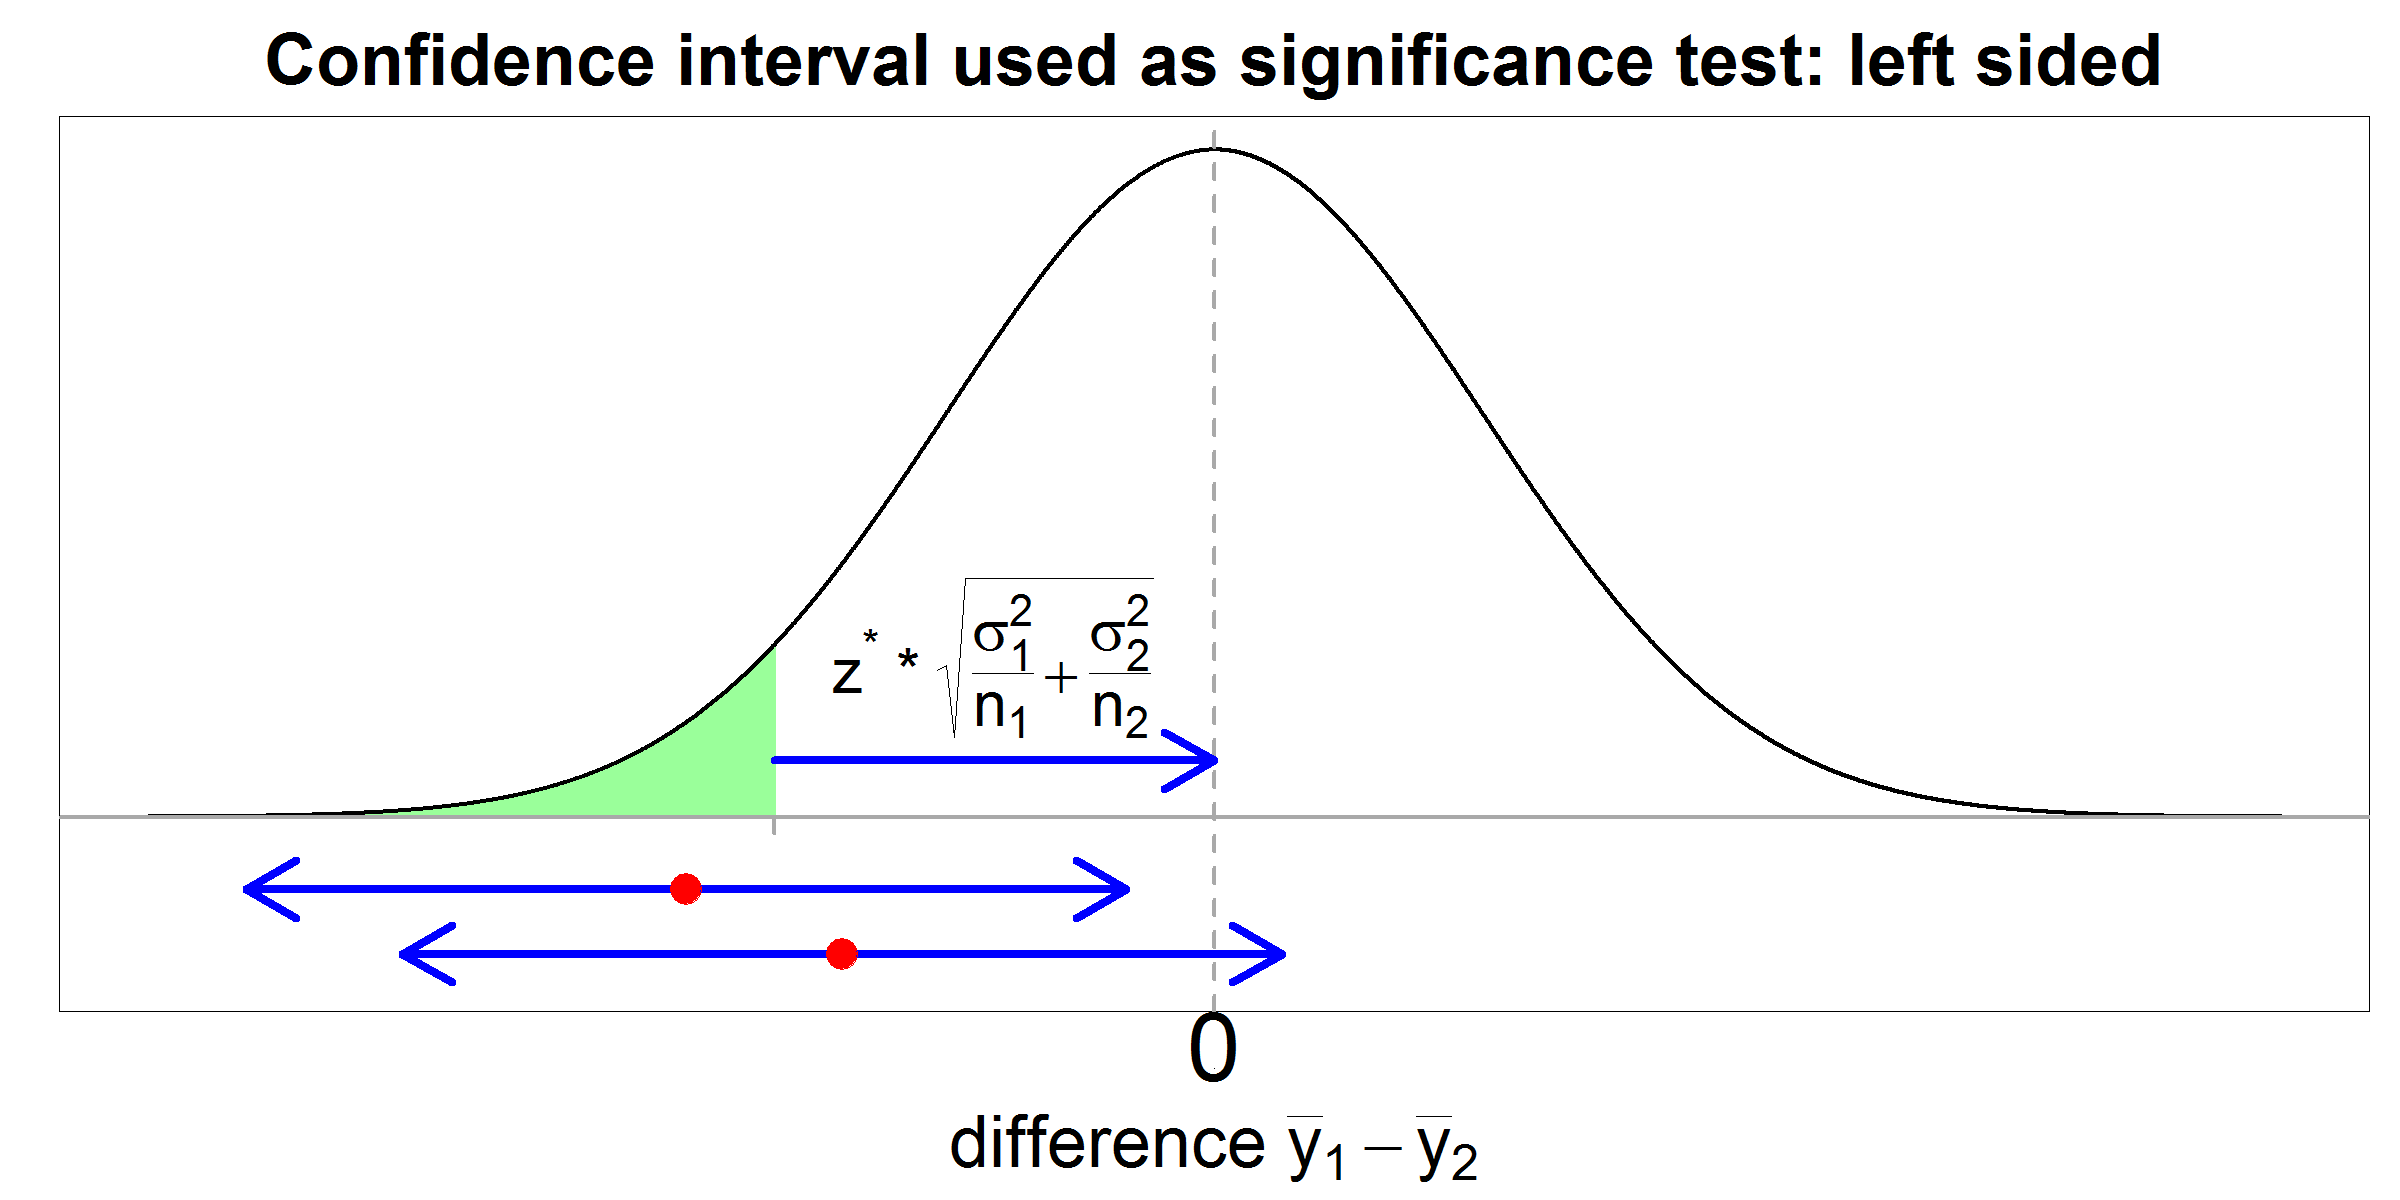 confidence interval as significance test